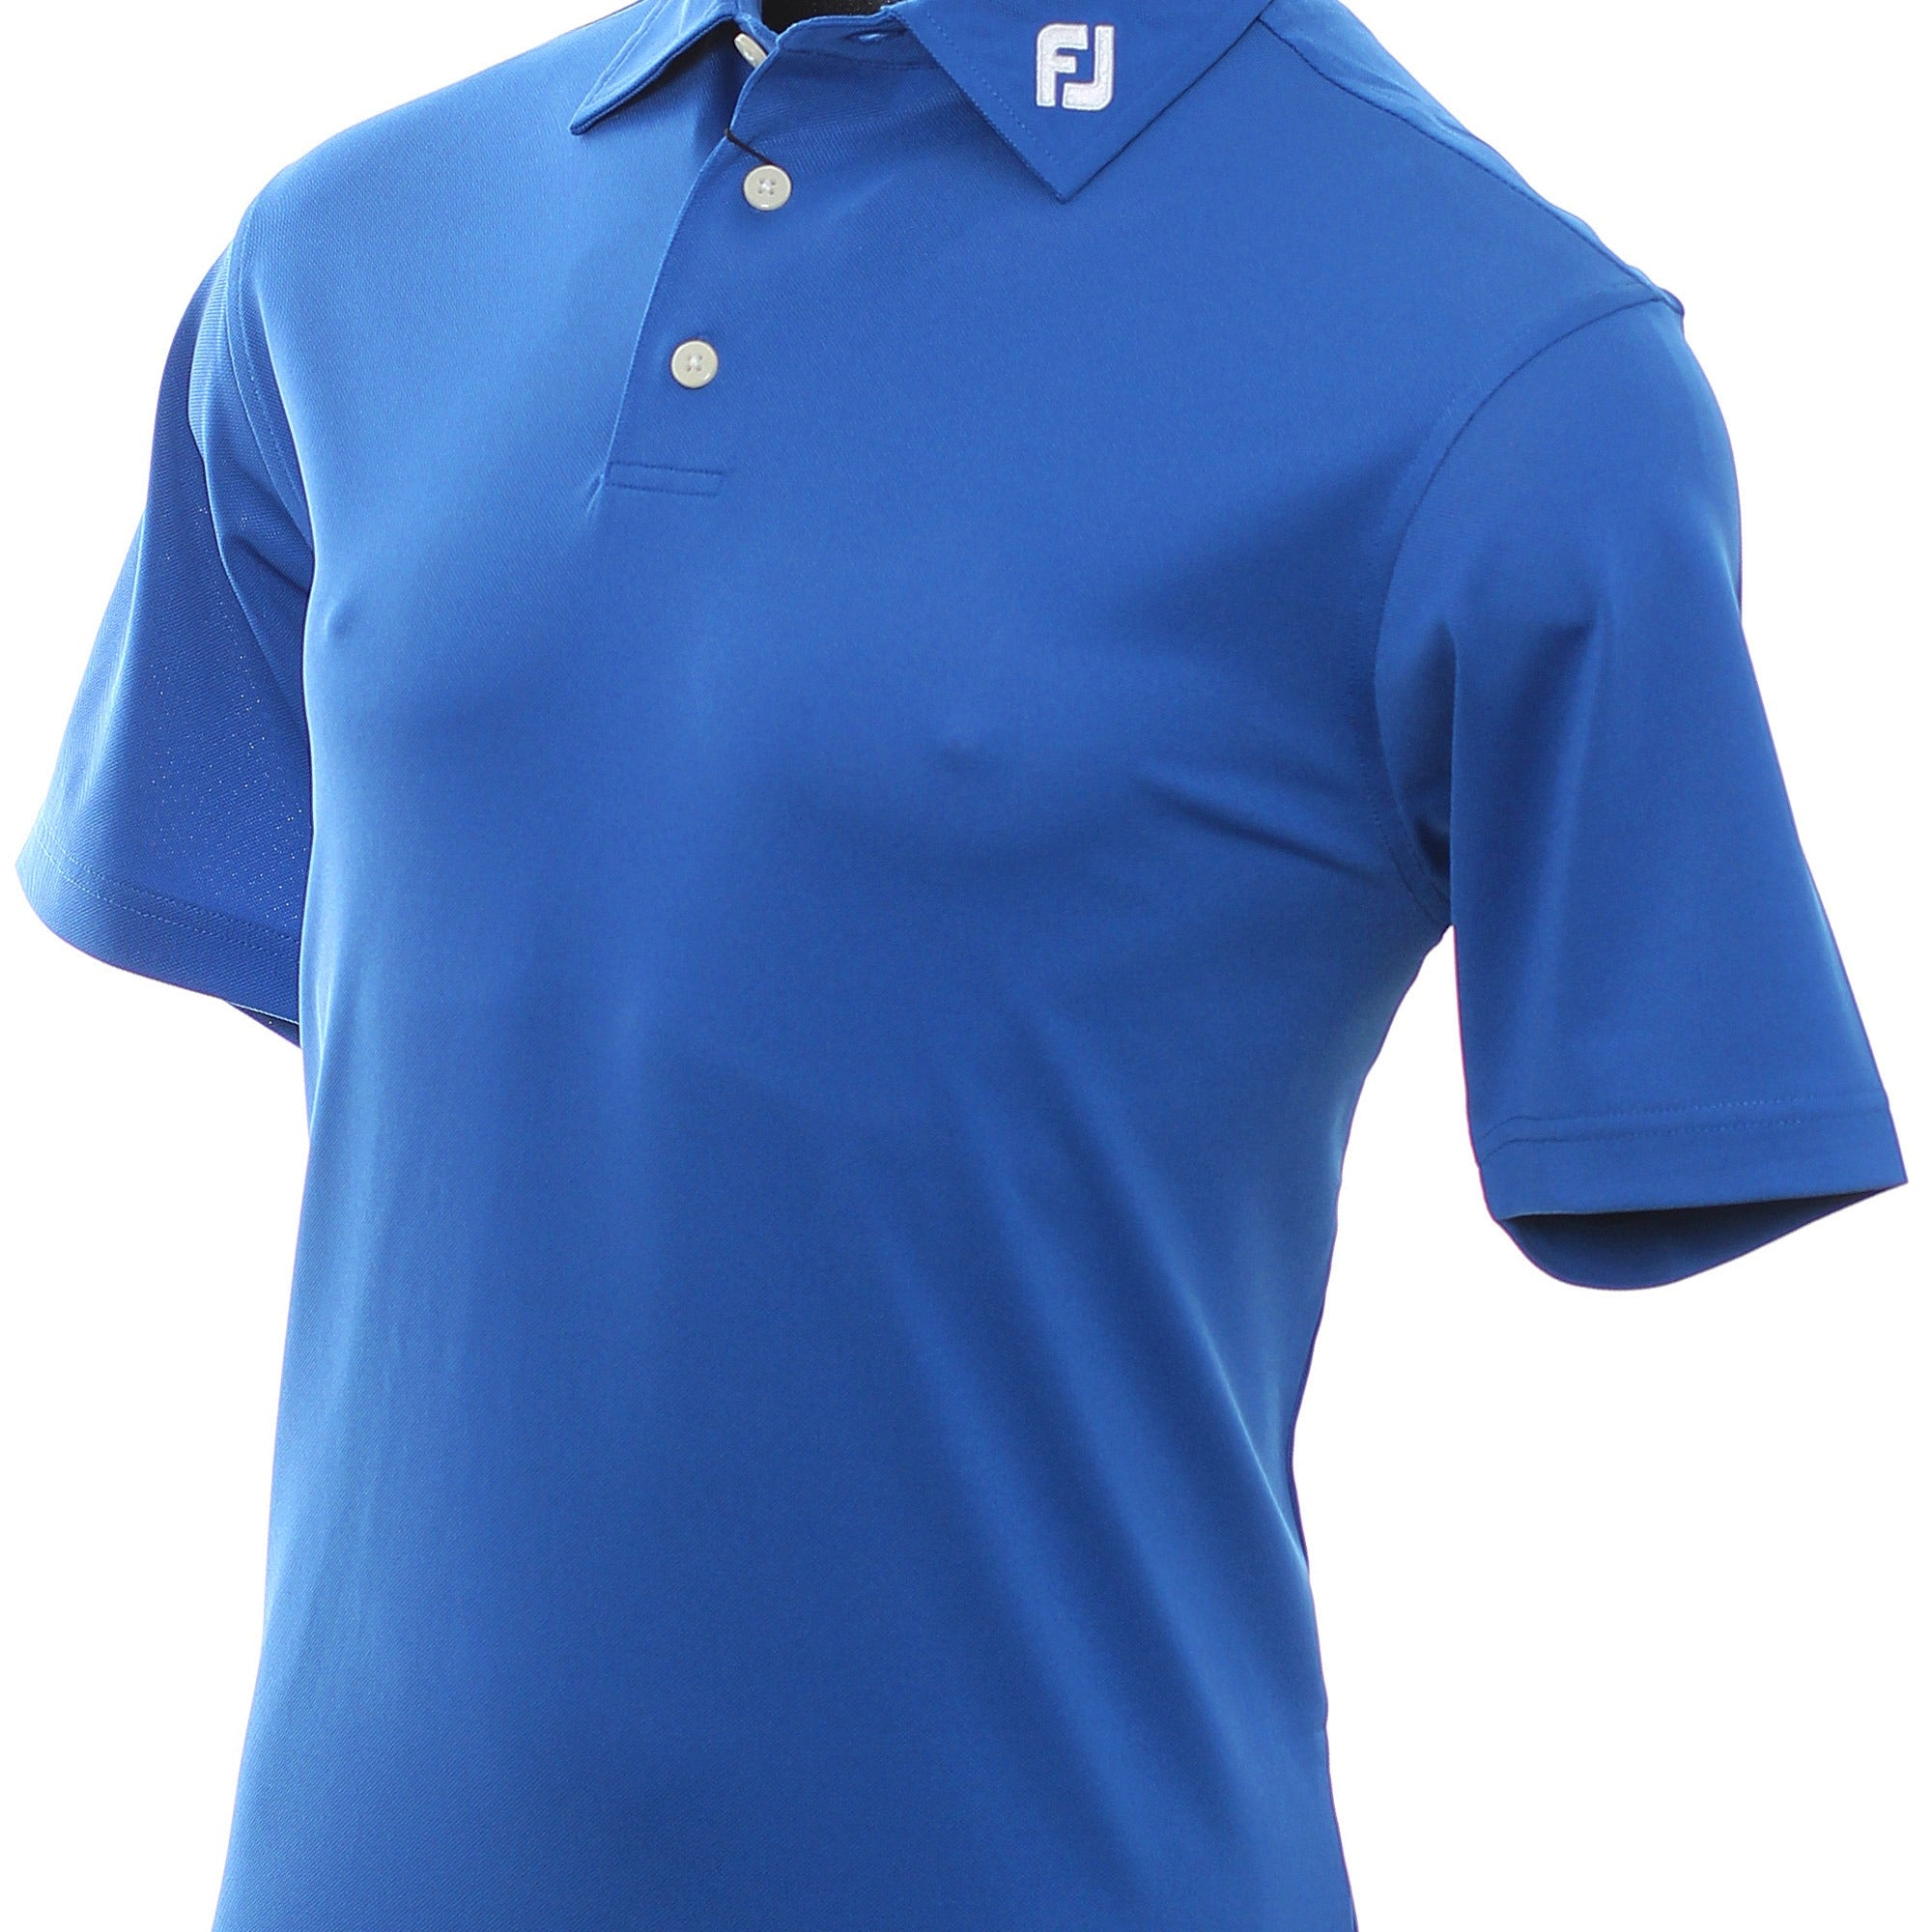 FootJoy Stretch Pique Solid Golf Shirt 90350